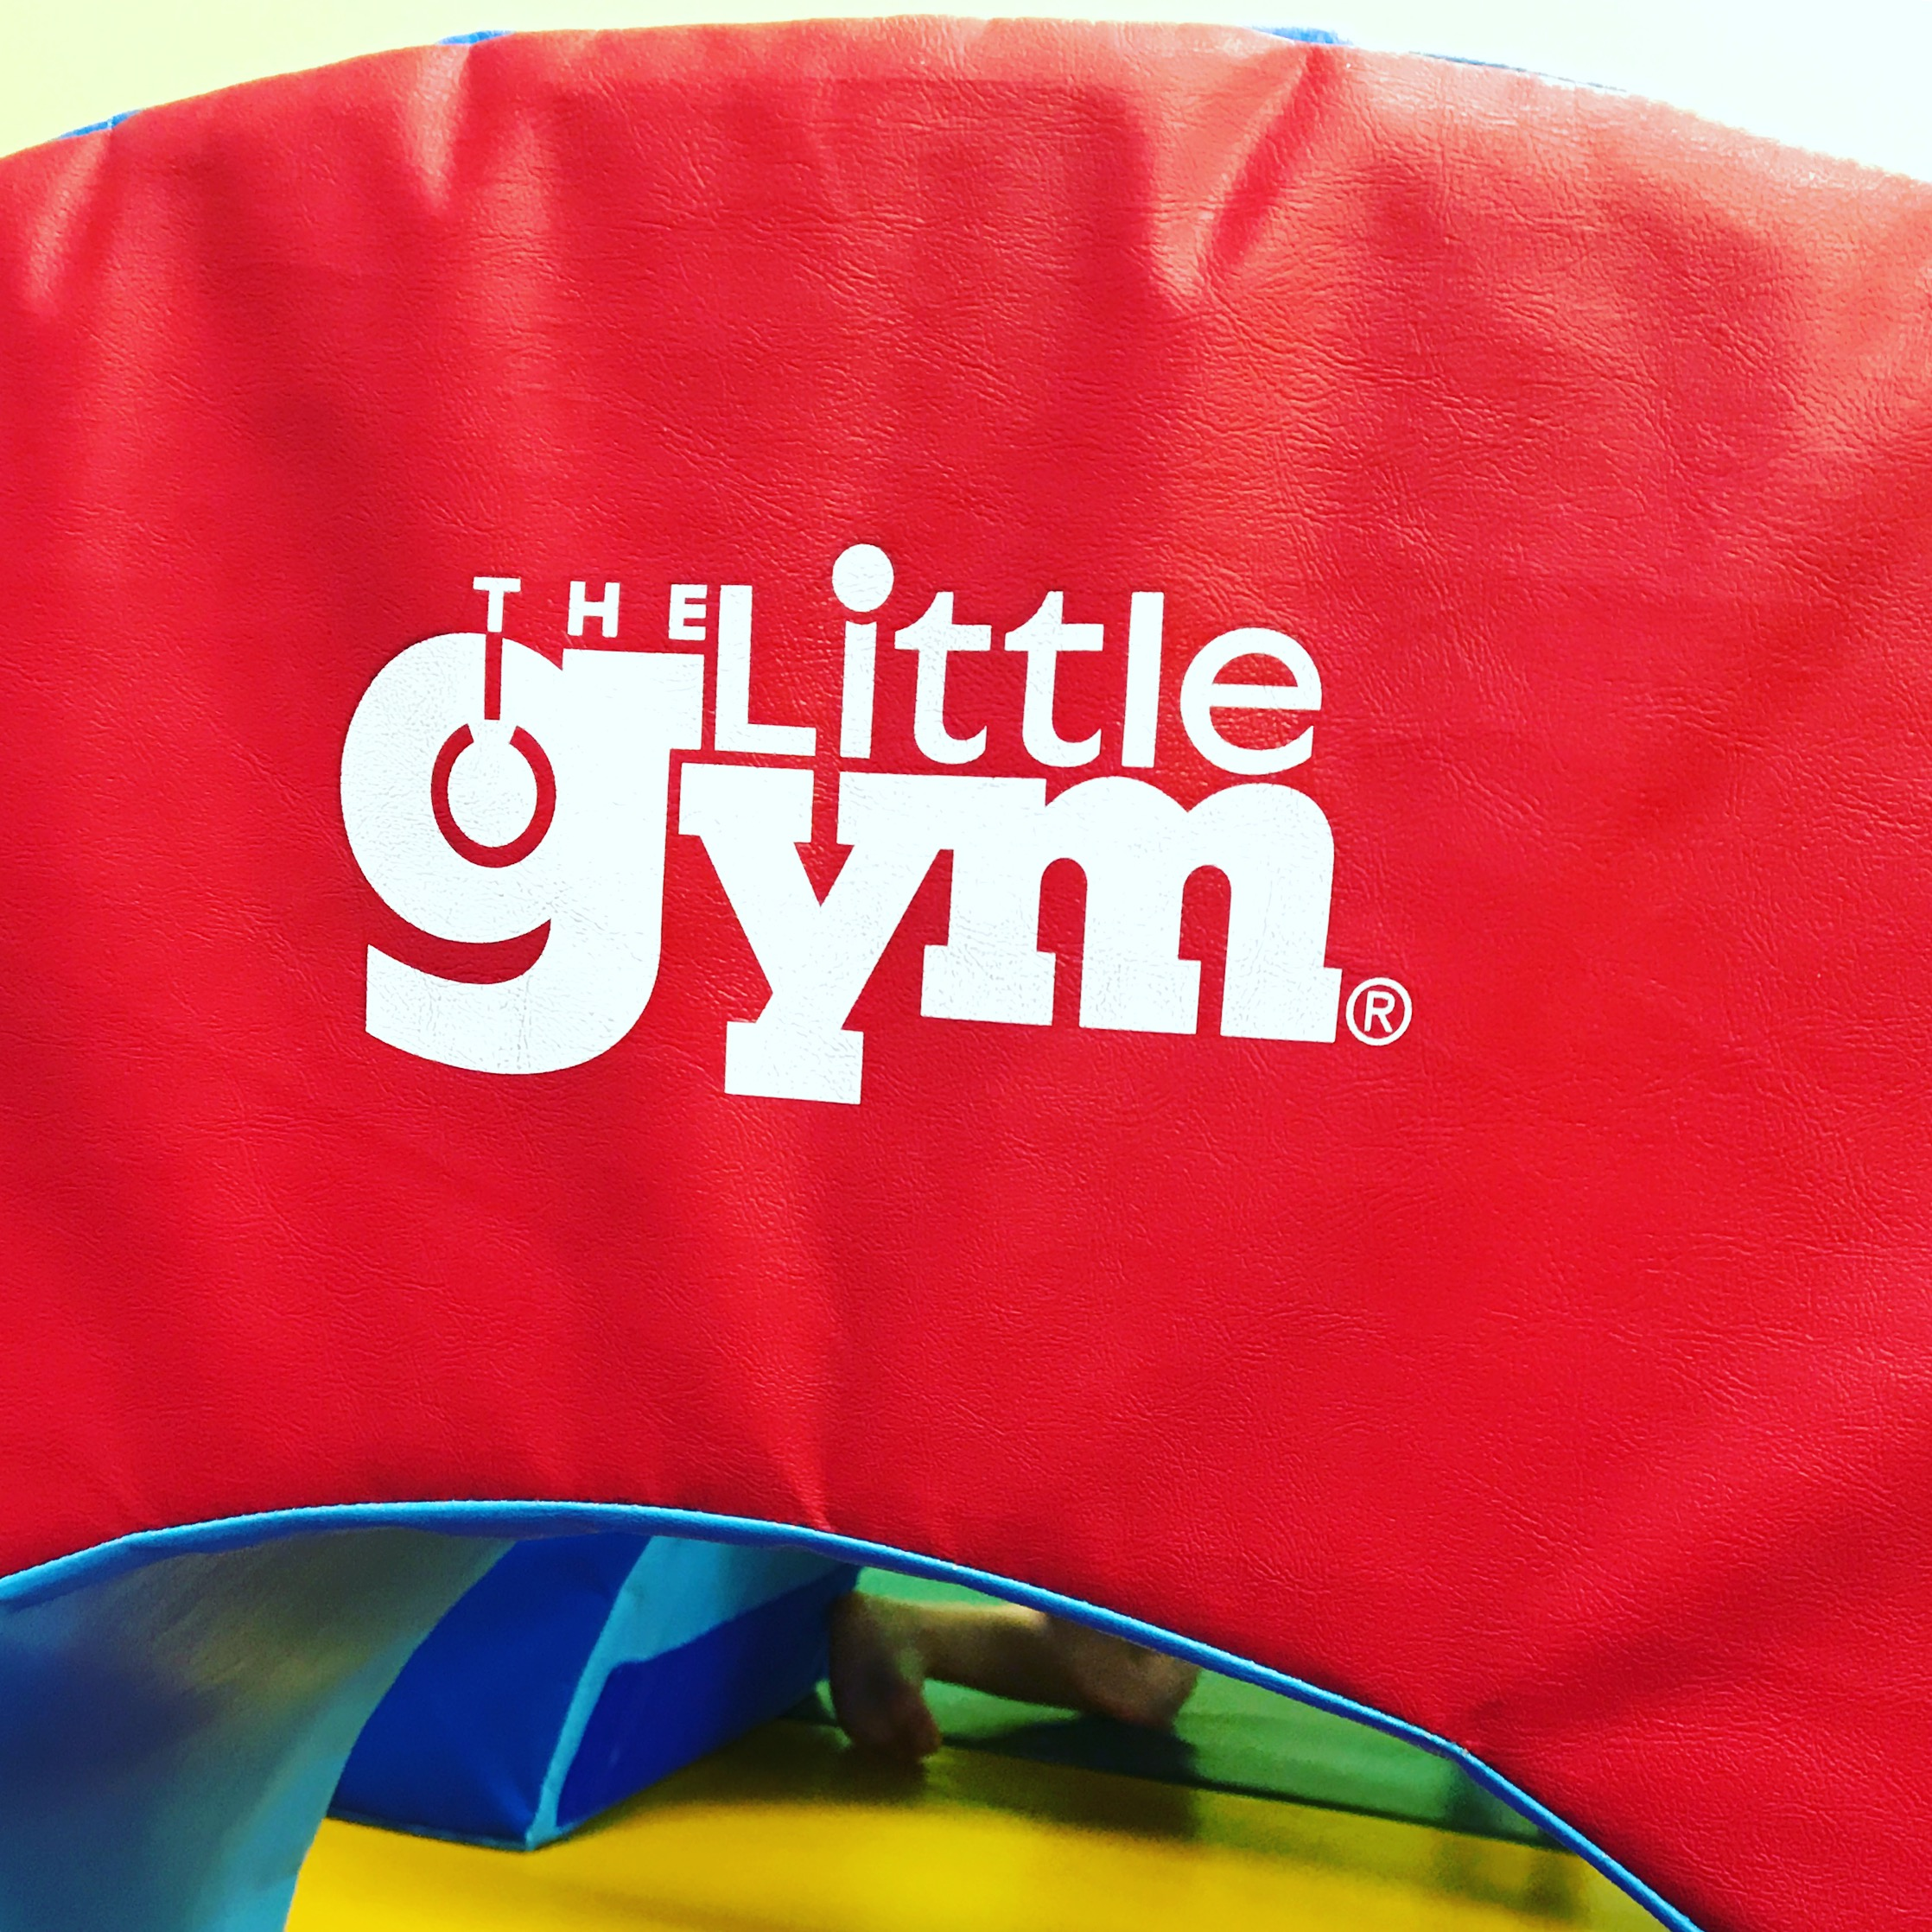 Fun at The Little Gym